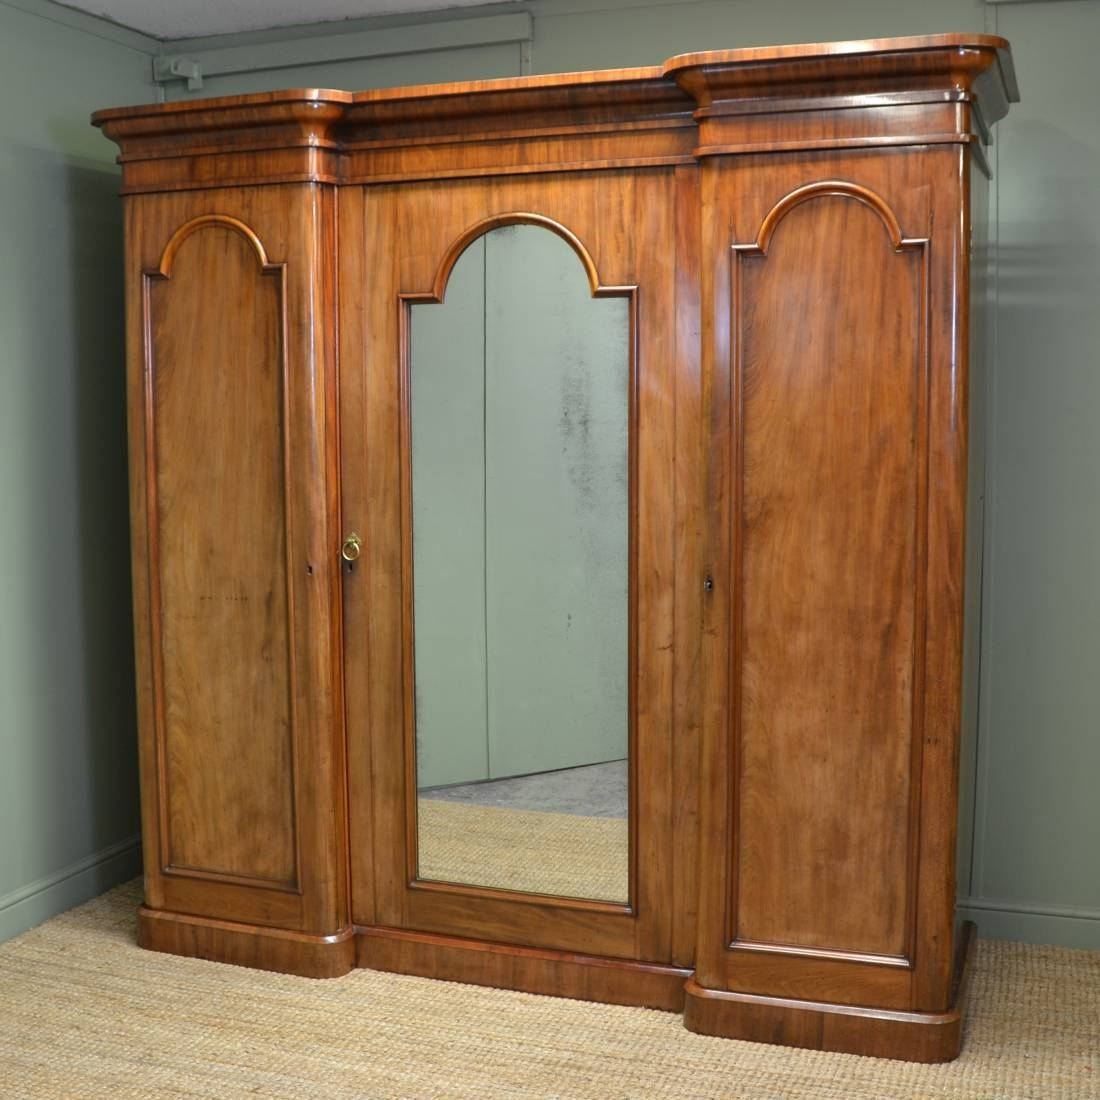 Large Victorian Mahogany Antique Triple Wardrobe - Antiques World with regard to Victorian Breakfront Wardrobe (Image 5 of 30)